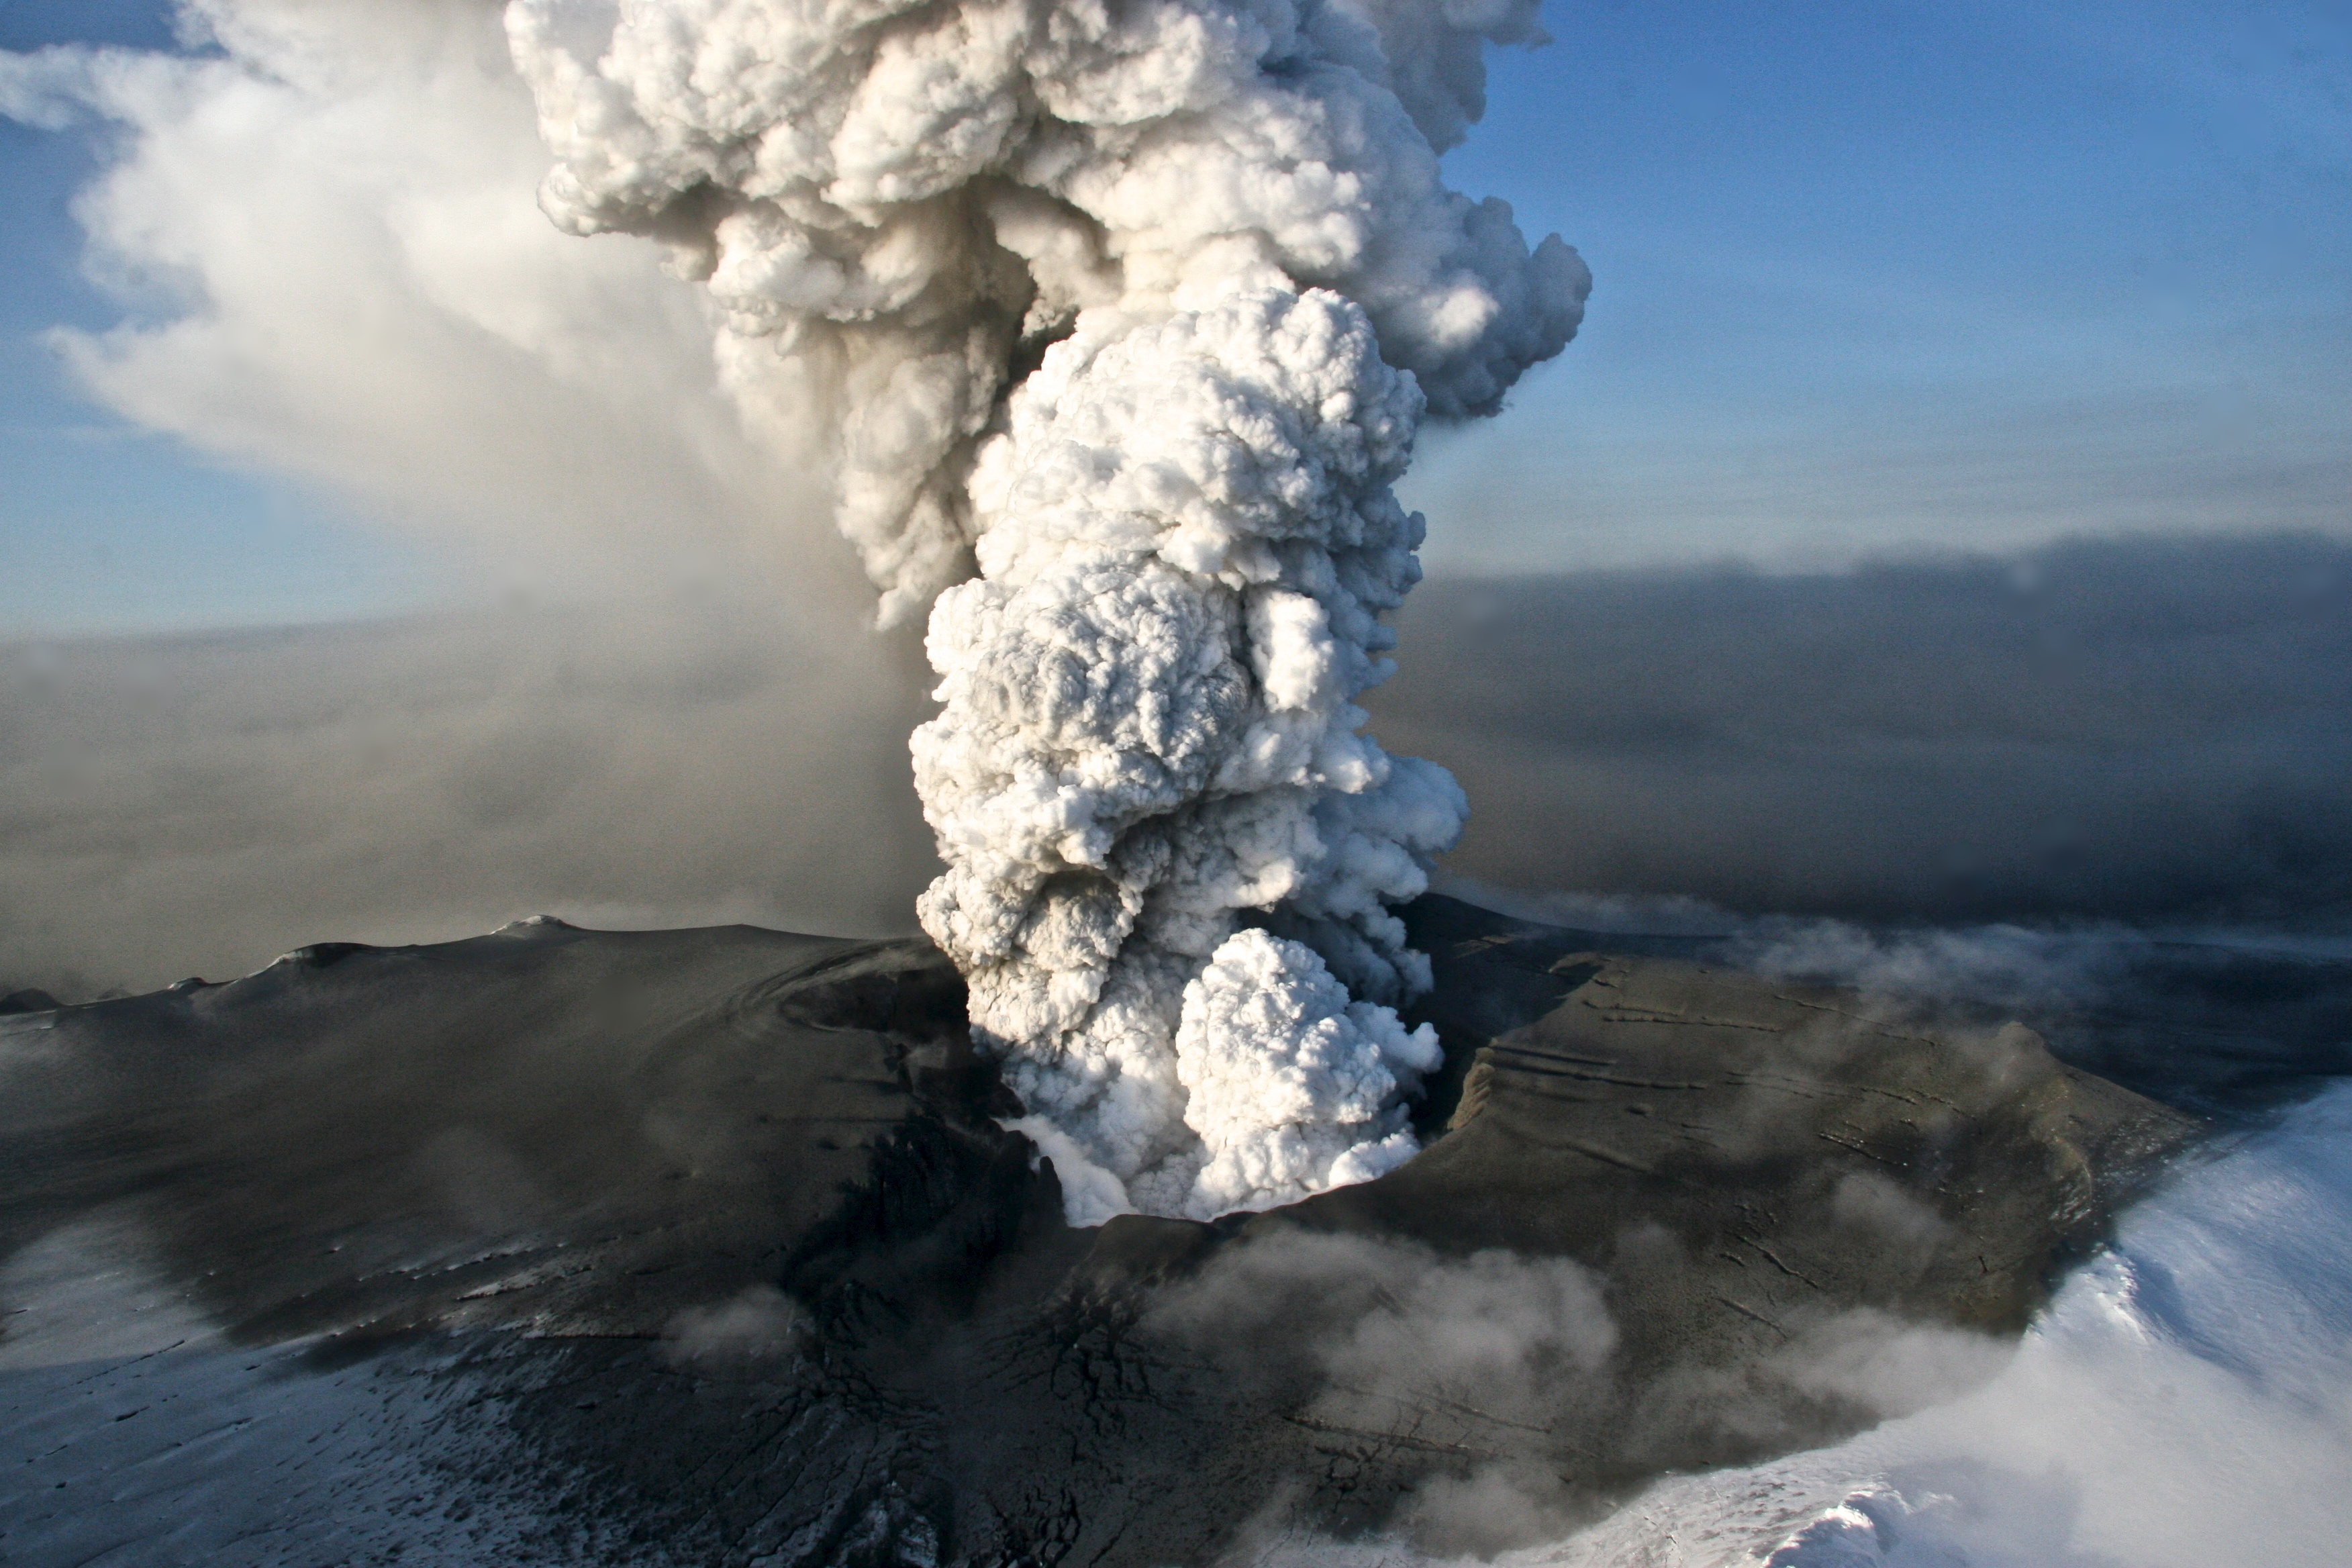 Picture #4 - Iceland volcano 2010